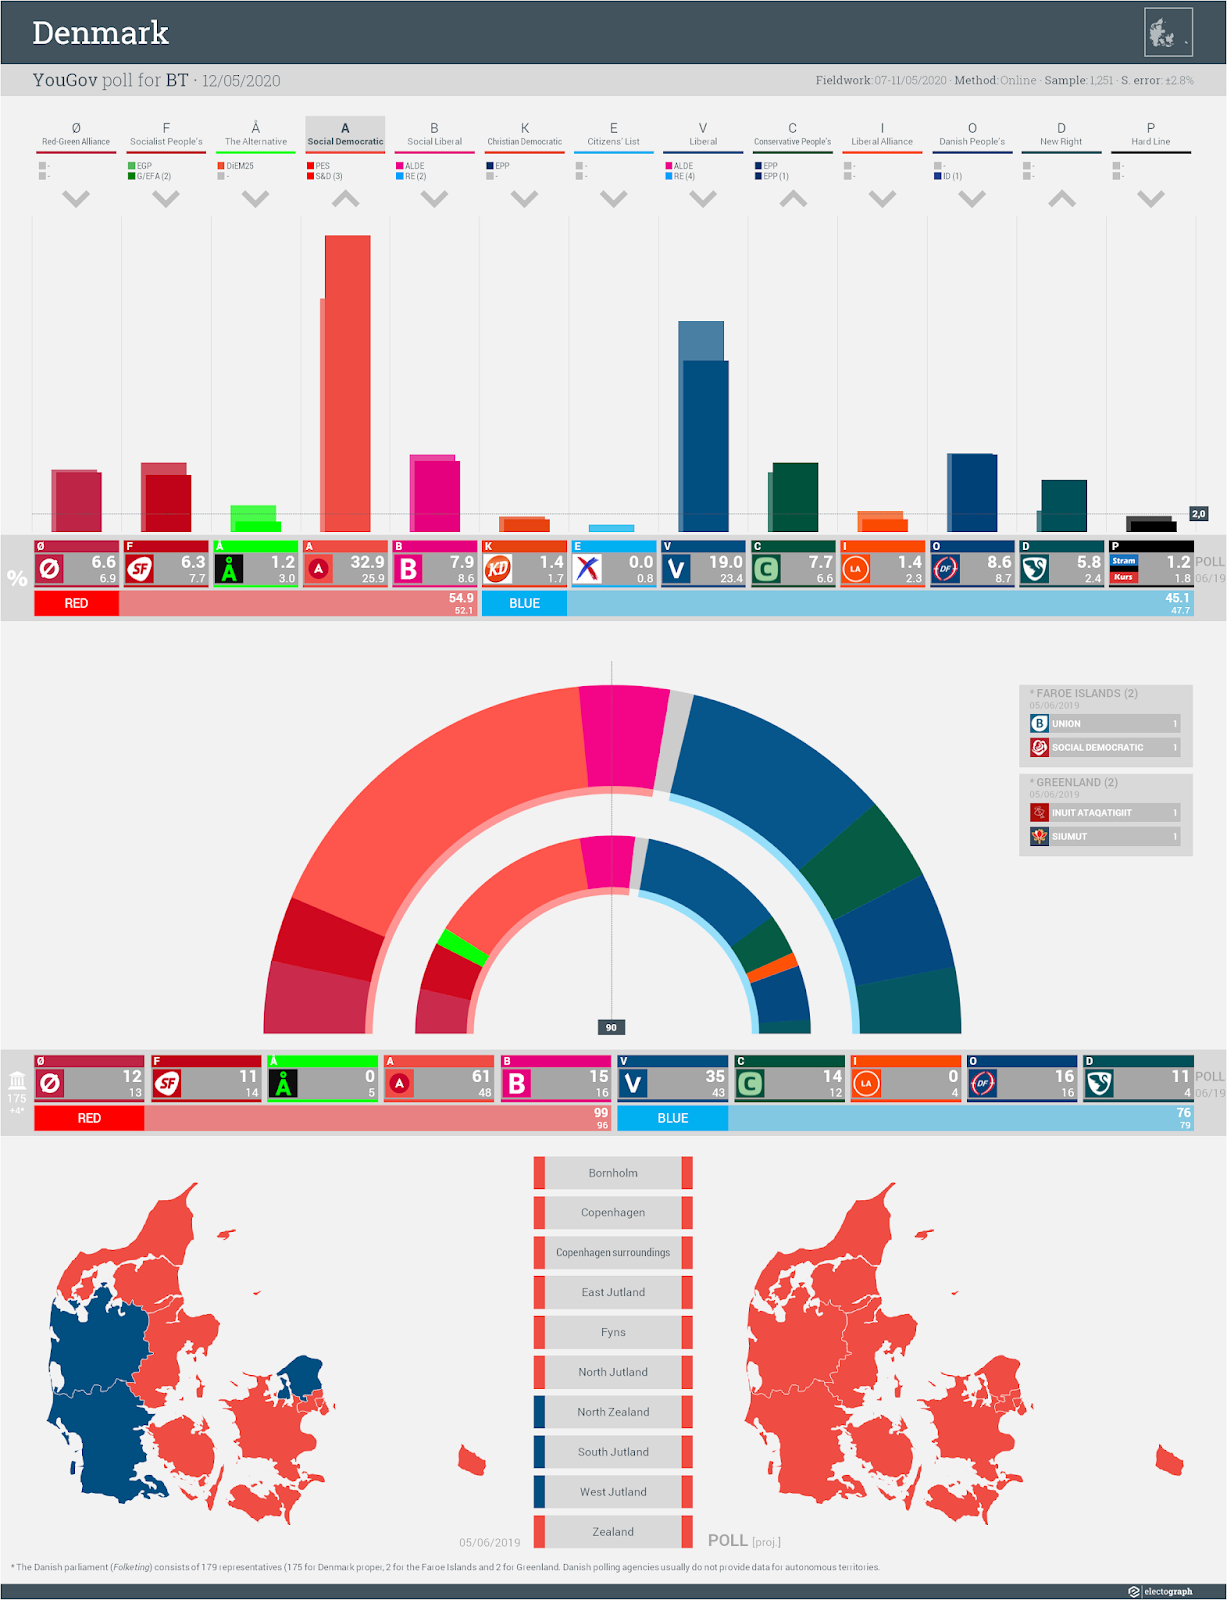 DENMARK: YouGov poll chart for BT, 12 May 2020